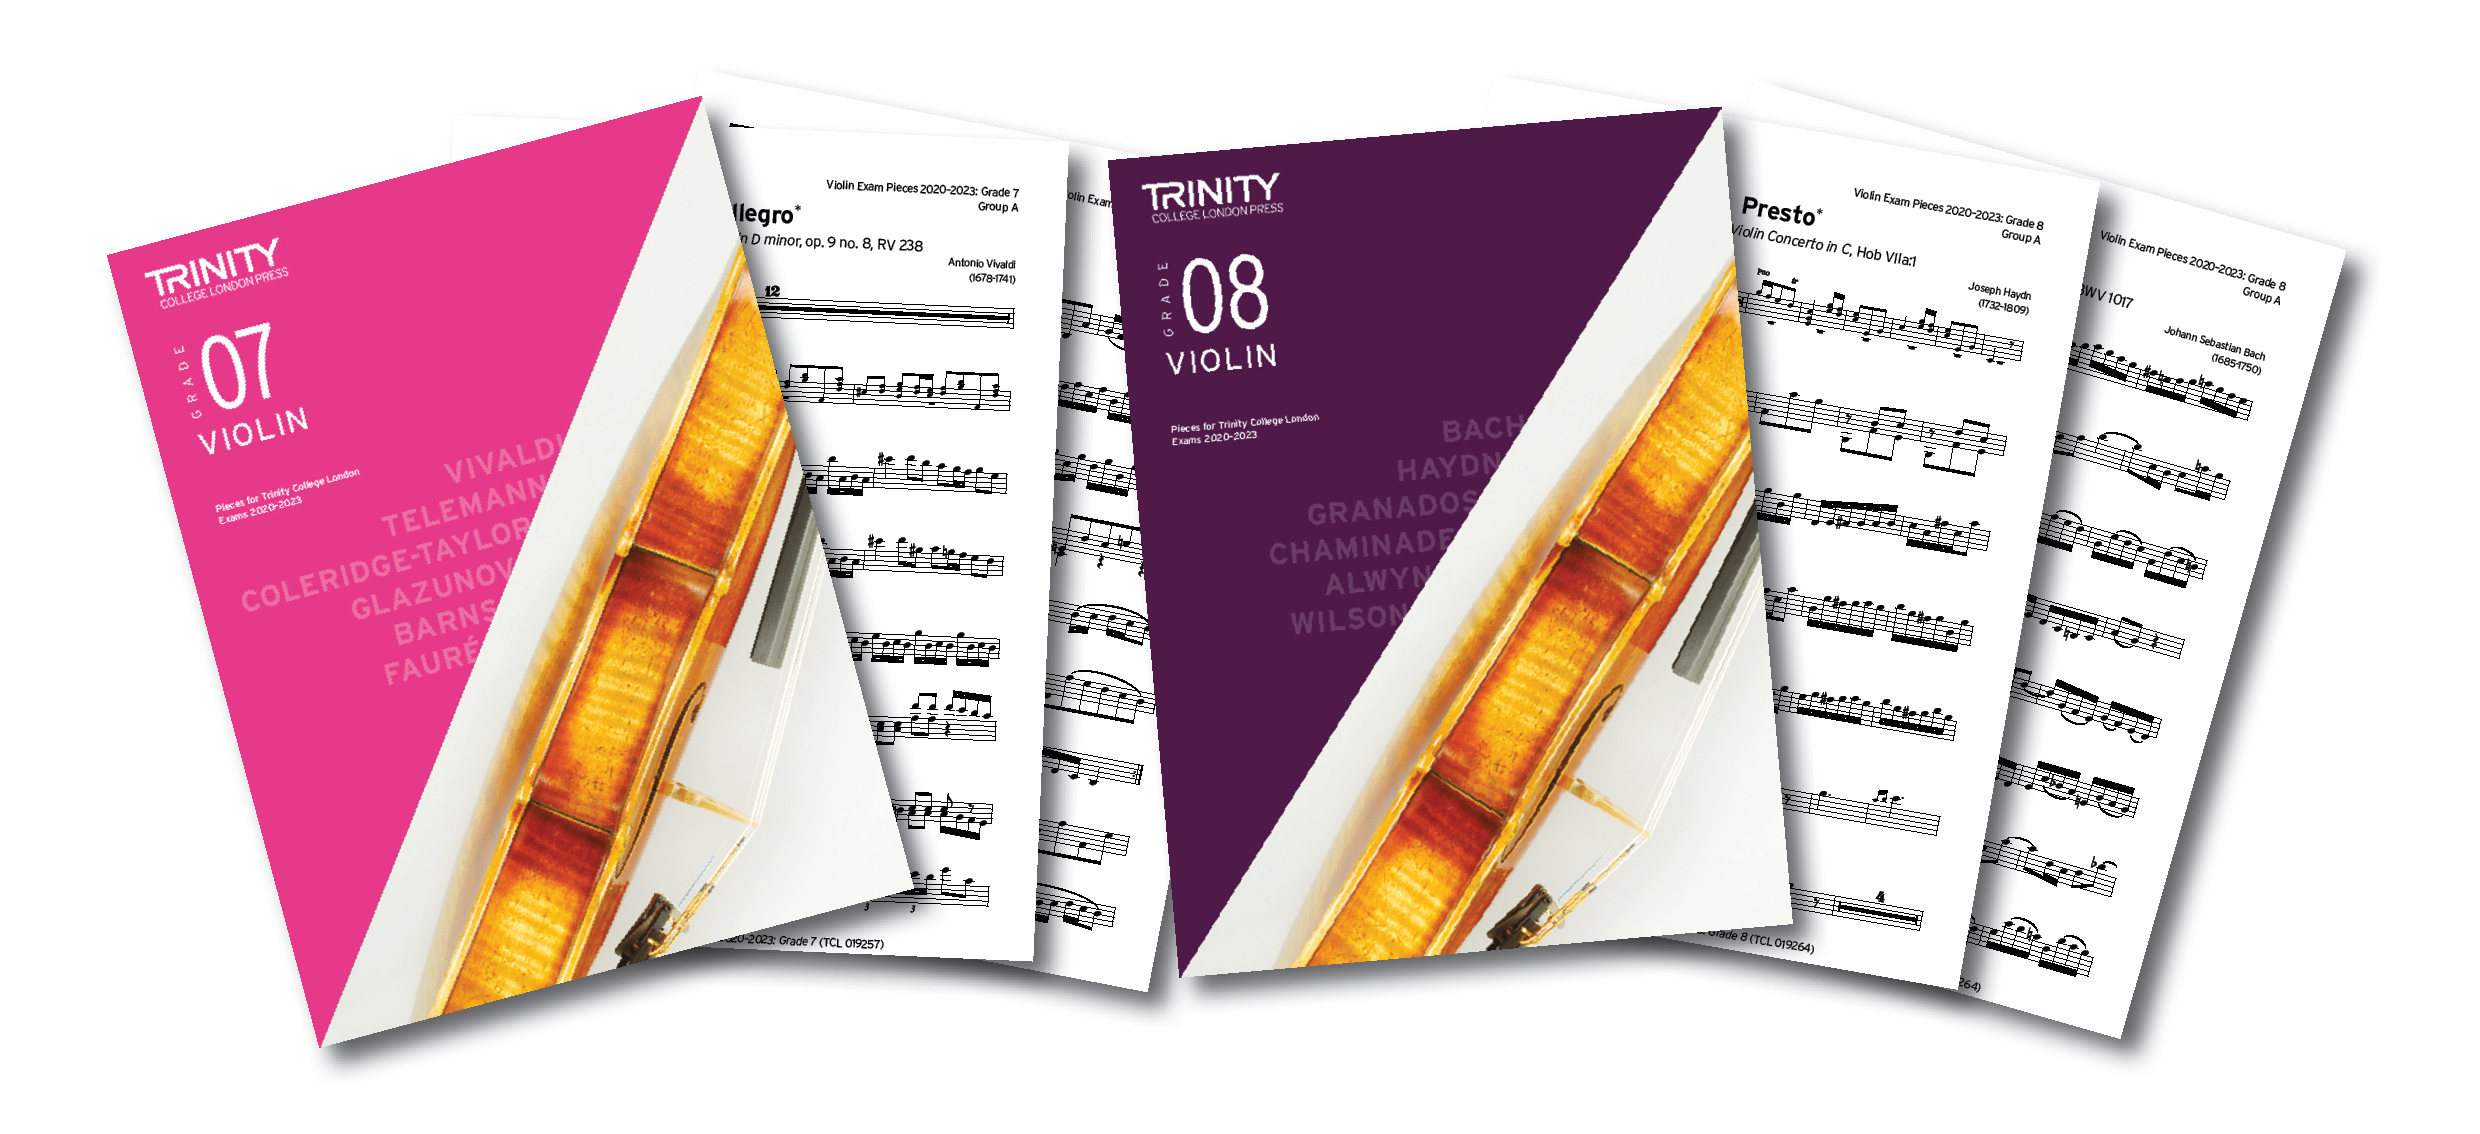 Violin clean editions banner-1